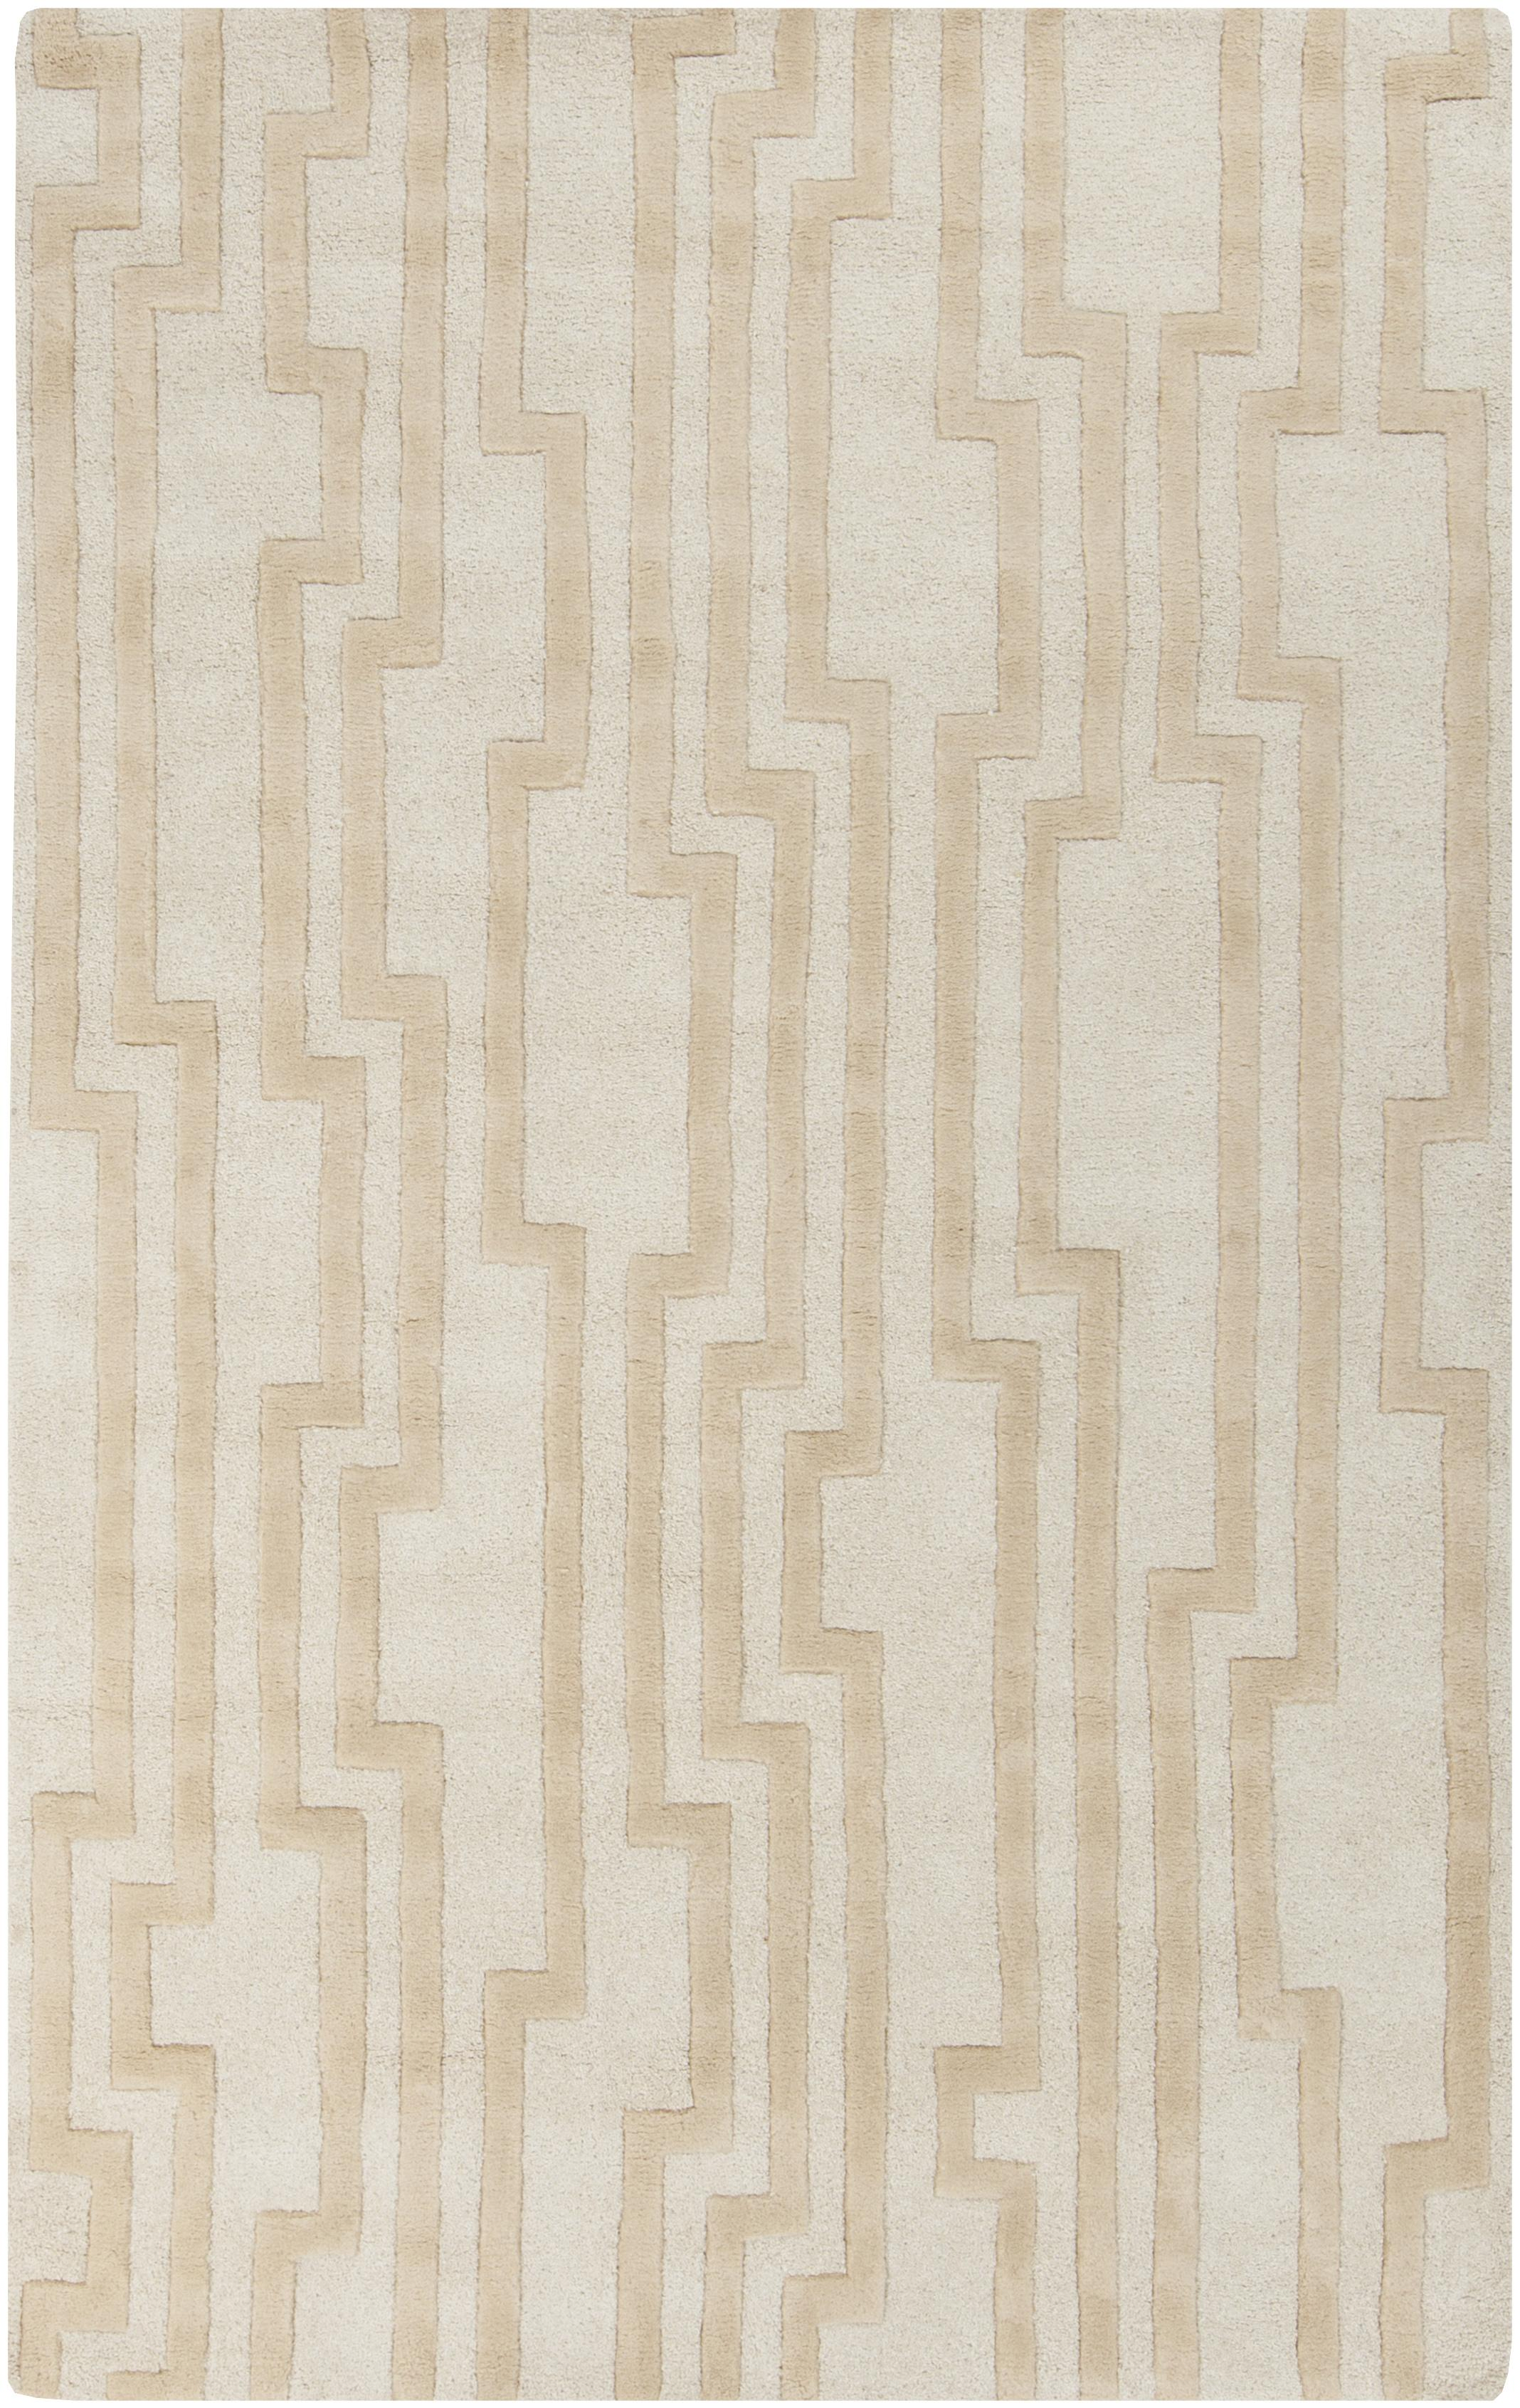 Surya Rugs Modern Classics 9' x 13' - Item Number: CAN2021-913